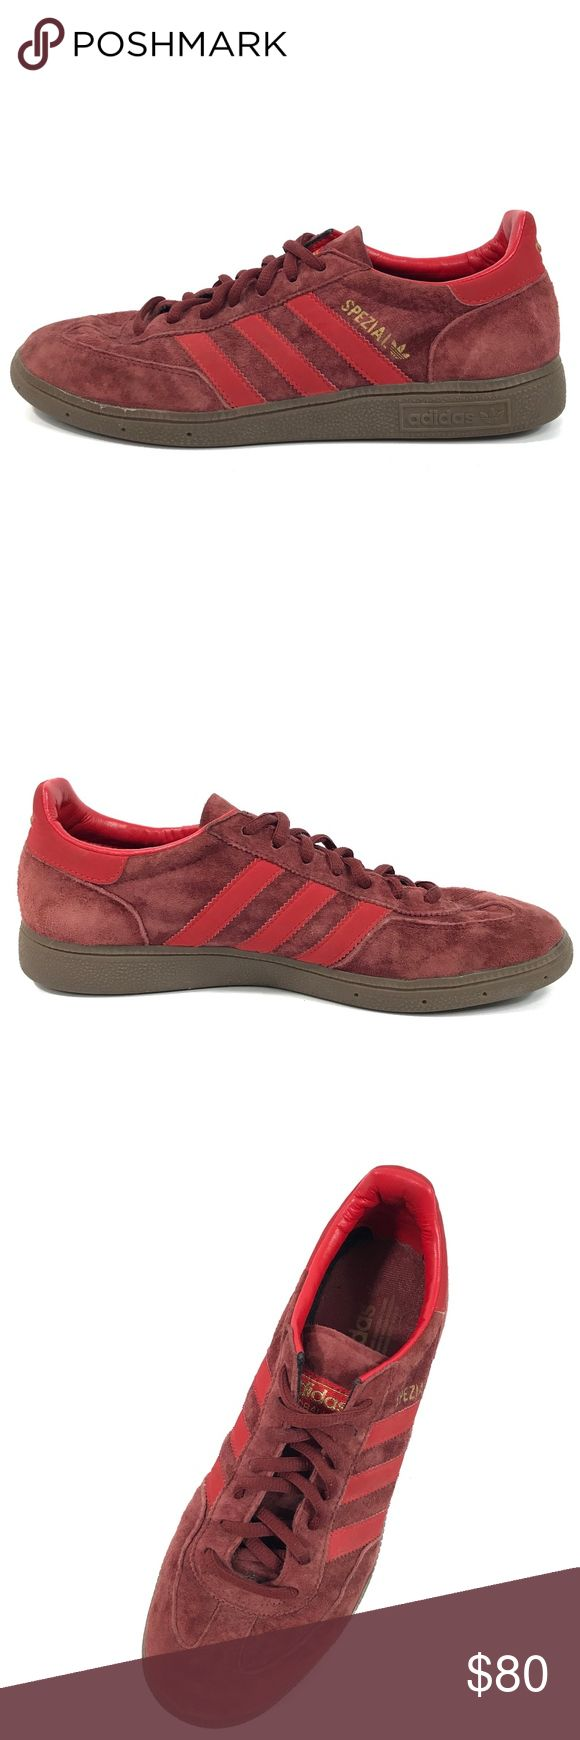 """2012 Adidas Handball Spezial 3 Stripe Suede Shoes GUC 2012 Adidas Mens Sz 8 Handball Spezial 3 Stripe Red Suede Sneakers #675001  Great used condition (9.3/10.0). No holes, rips, or stains. Minor signs of wear (scuffing """"Adidas"""" wording on left shoes, light marks on rear ankles). Suede, laces, and soles are in great condition and clean. Light furs in insoles. A storage item. See pictures for details.  Size - 8 US Color - Red Material - Suede / Leather Style - Low Top Athletic Sneaker Width…"""